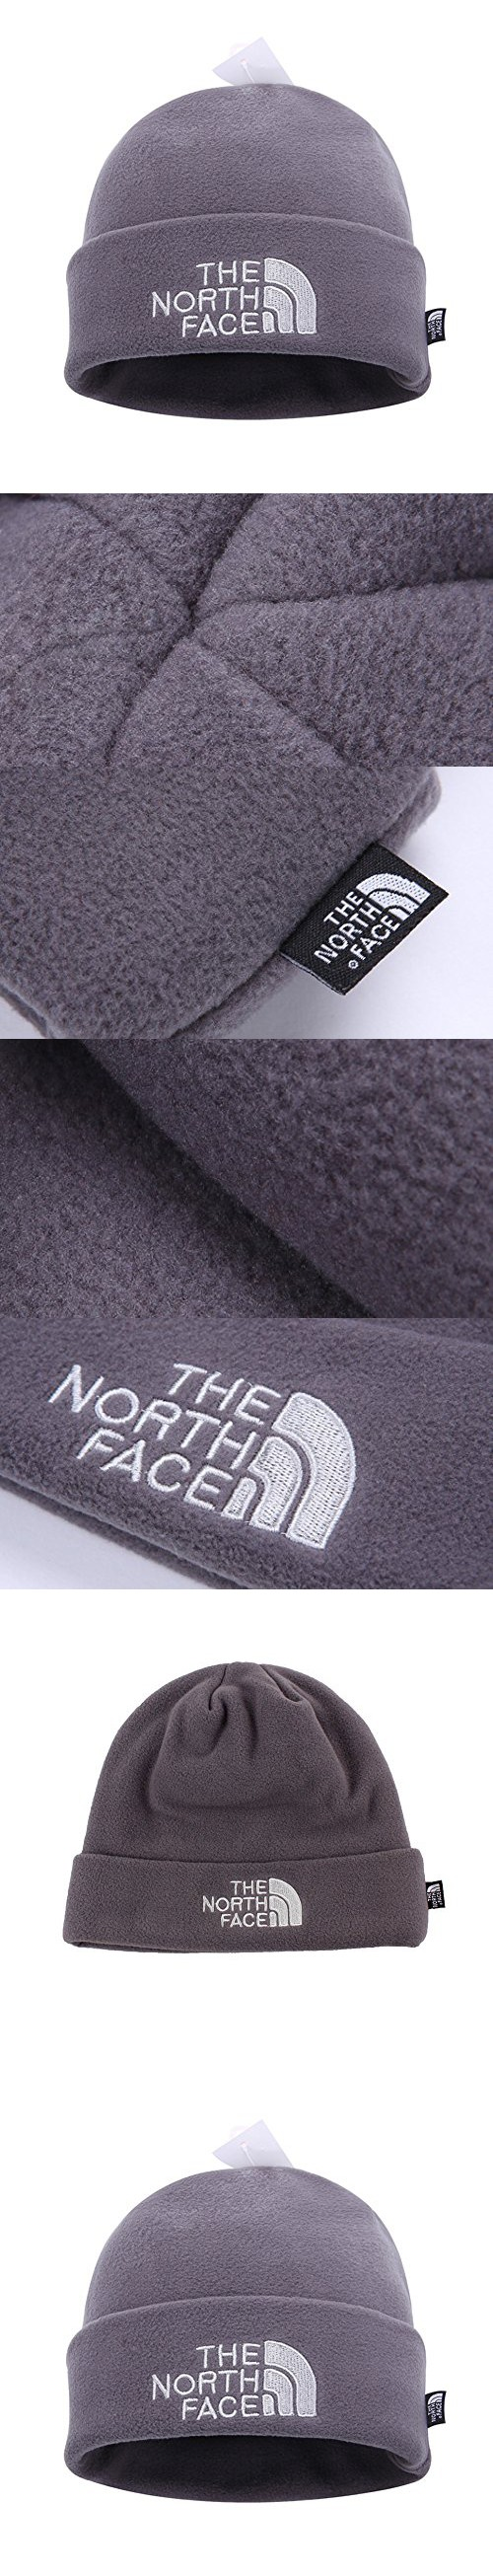 5adb61f968a74 The North Face Double Layers Winter Thicken Polar Fleece Thermal Beanie Hat  (Gray